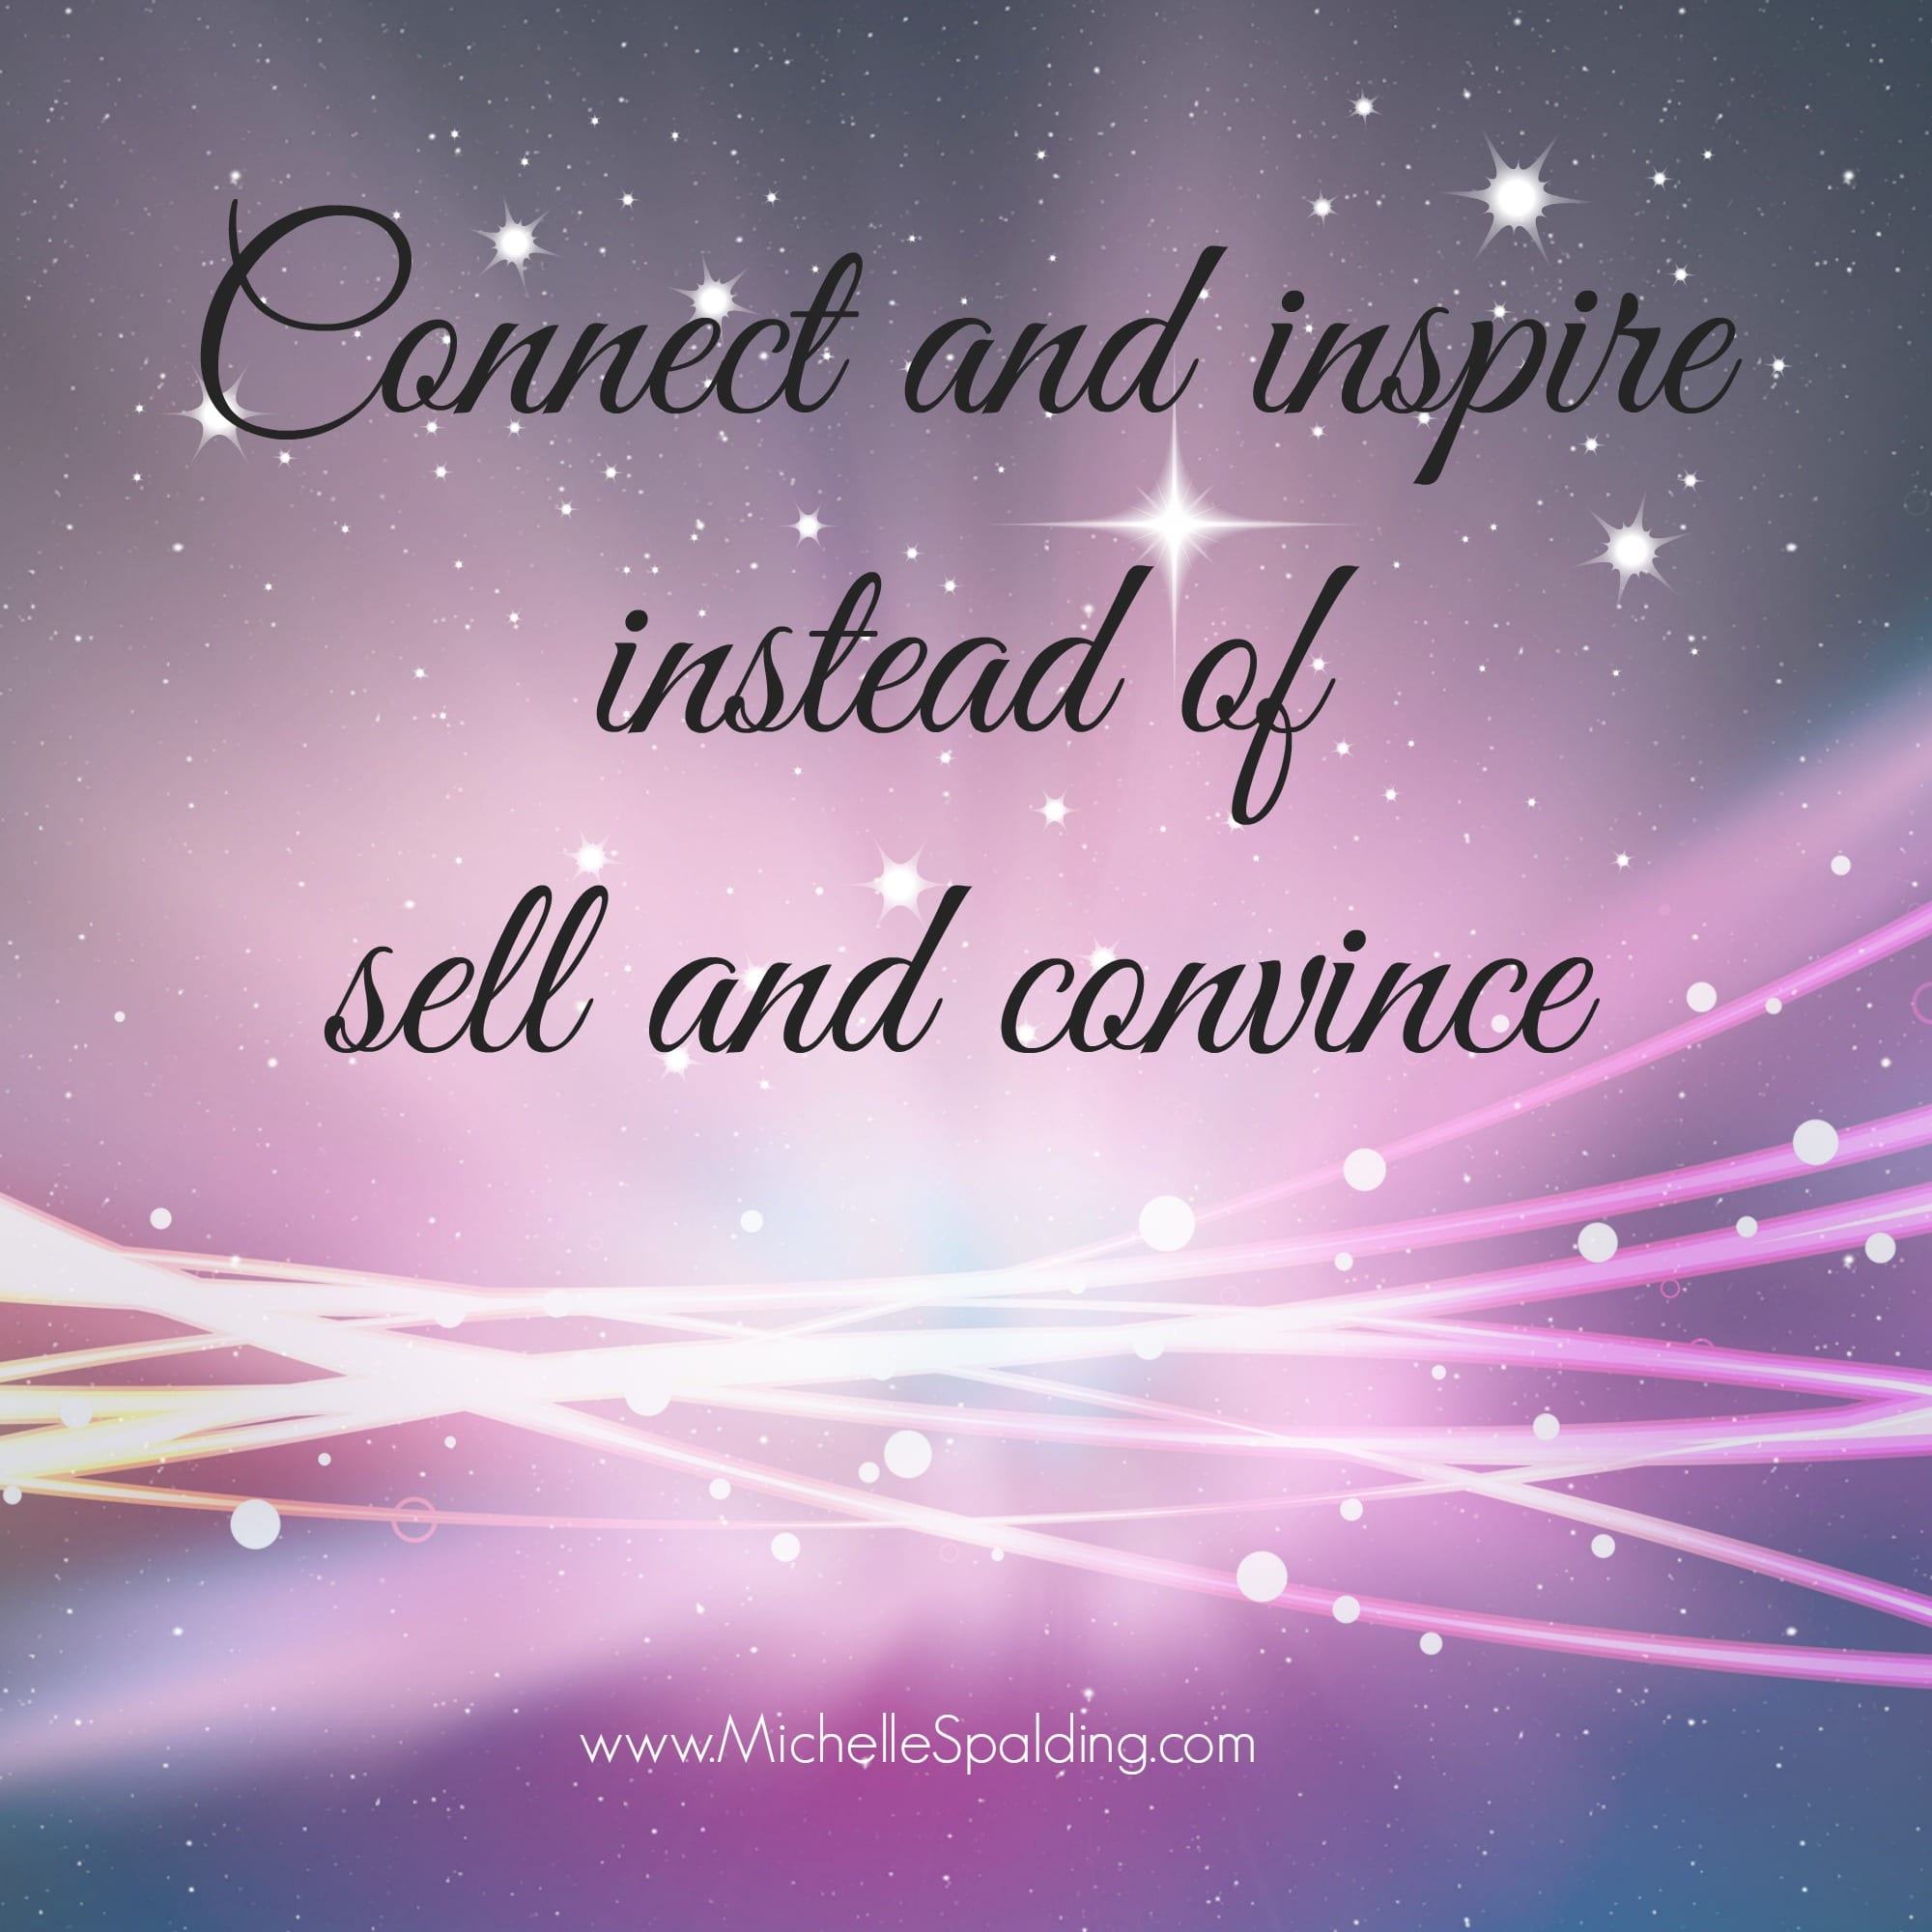 Connect and inspire instead of sell and convince